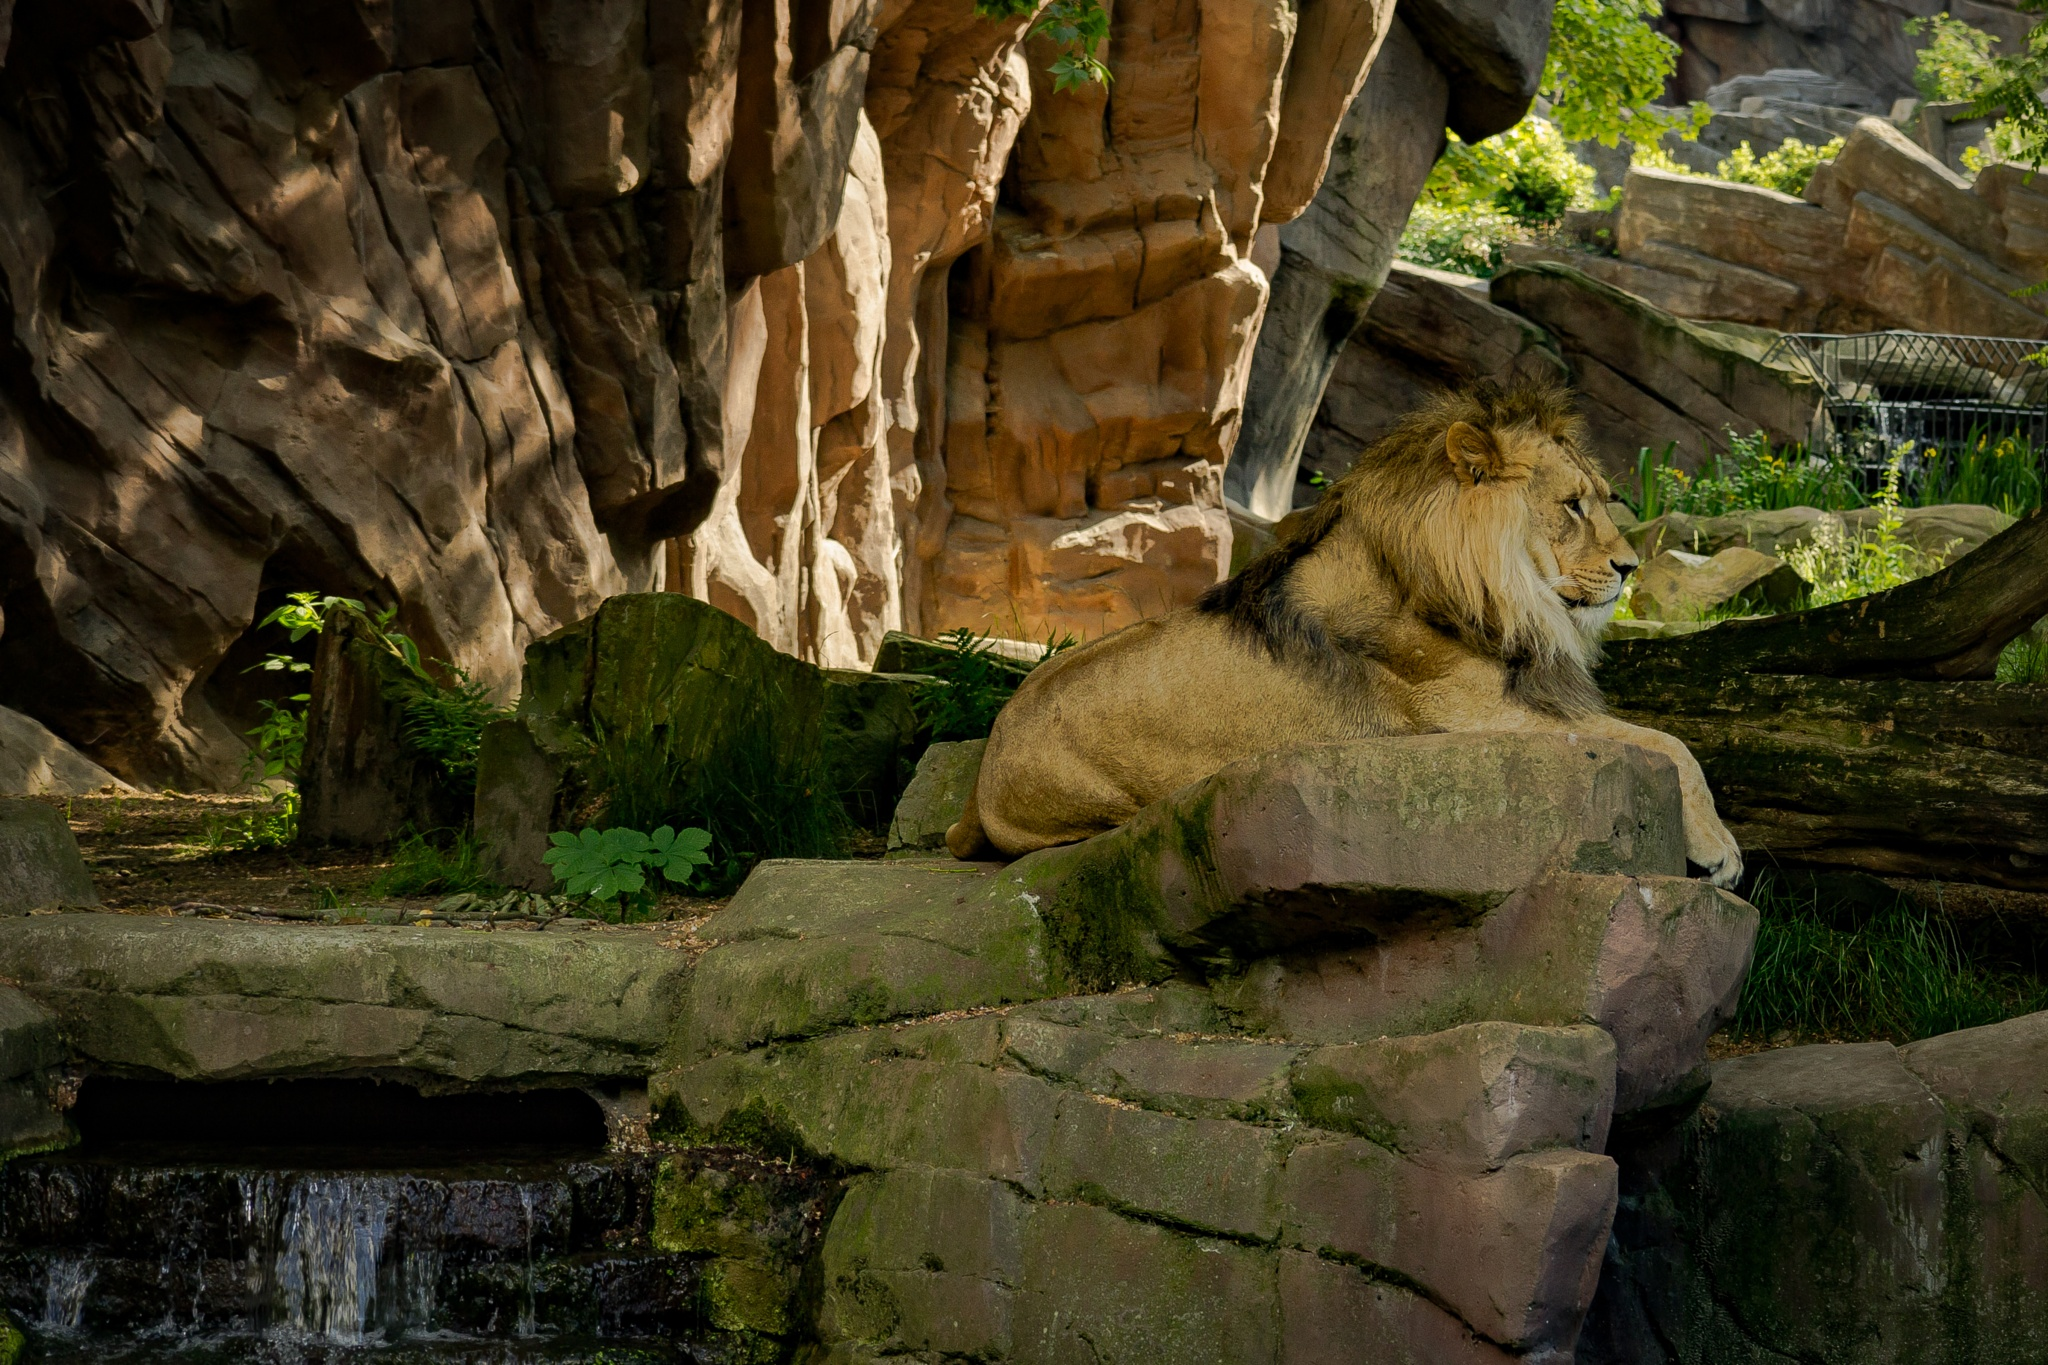 the lion king by Ronny Andries